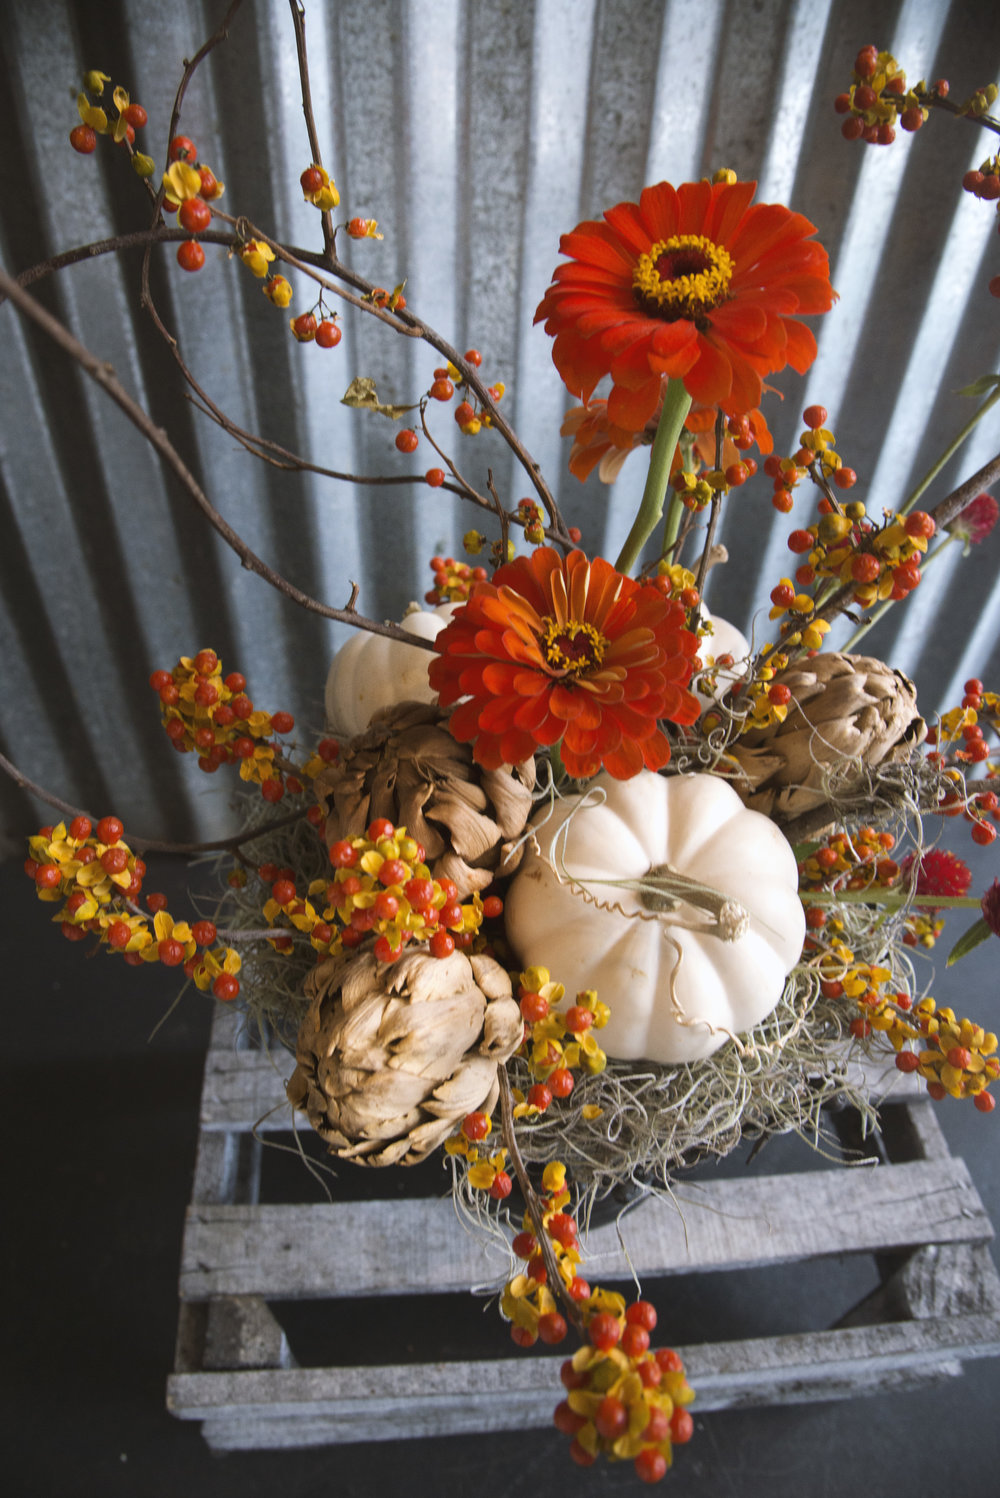 ppreserved centerpiece thanksgiving centerpiece deny mertz mitchs flowers new orleans florist.jpg